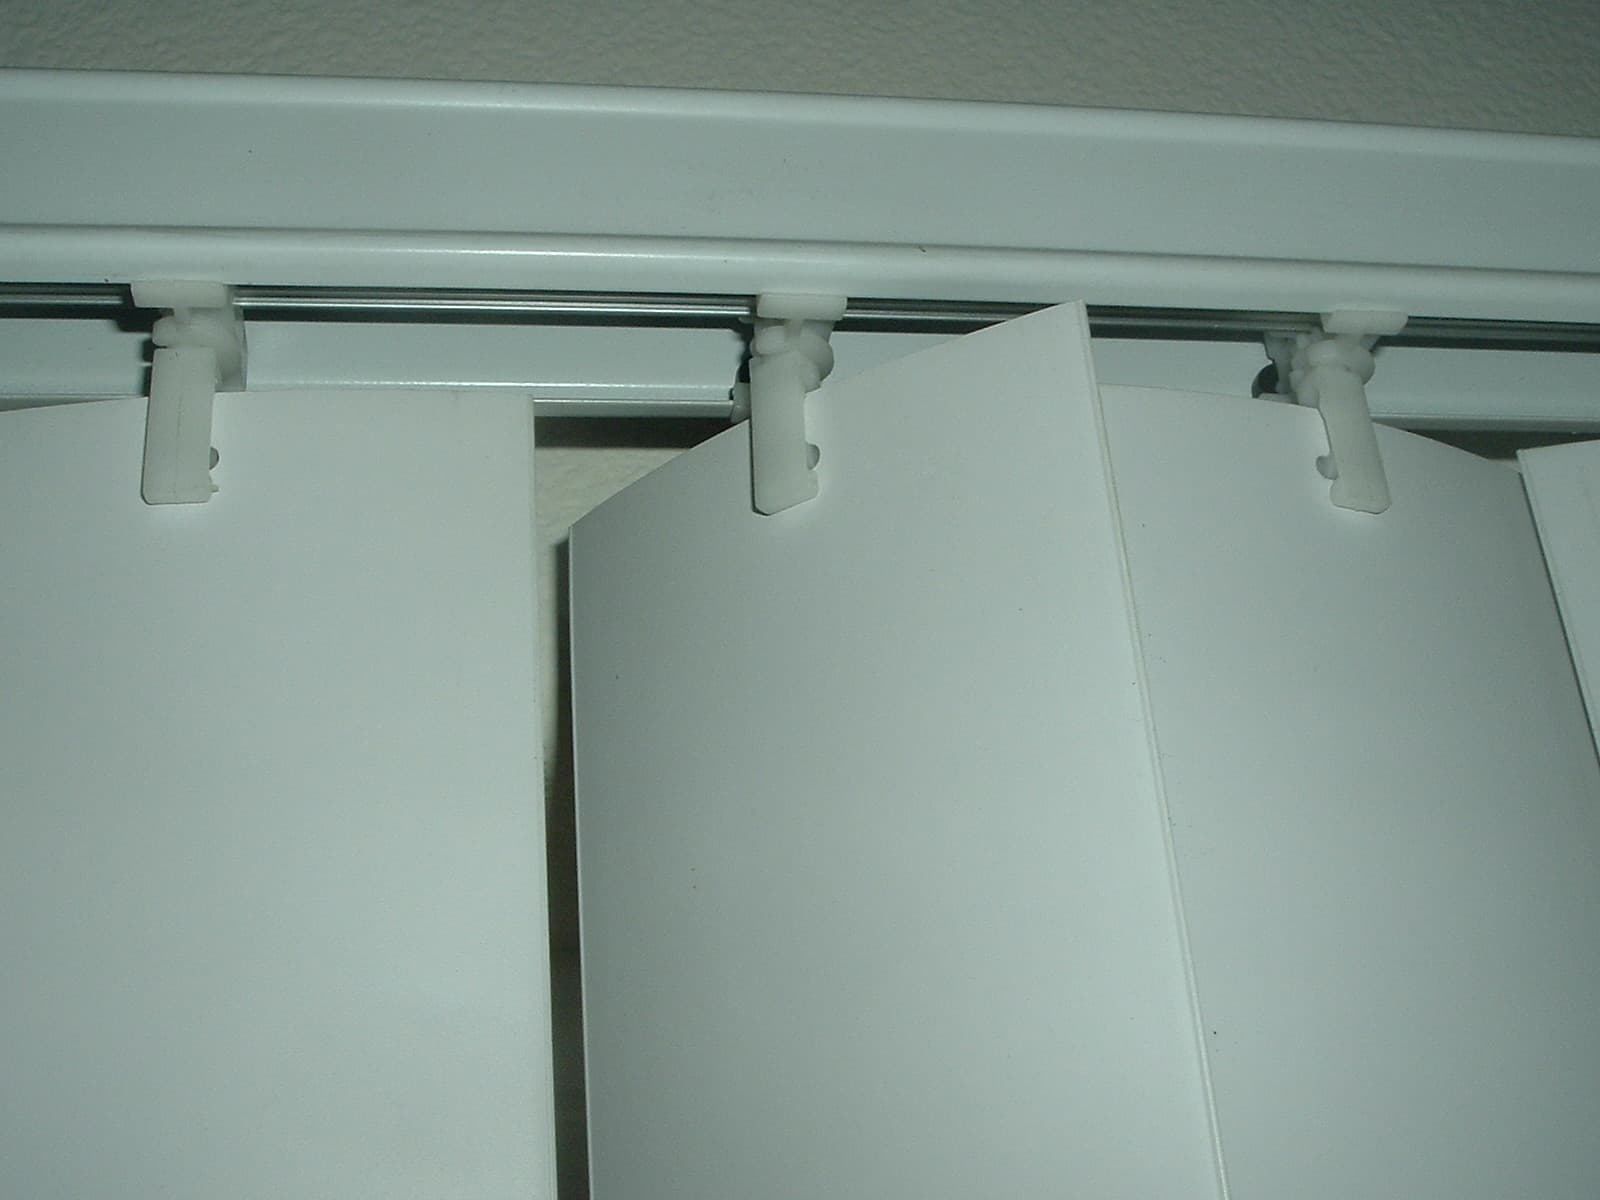 htm replacements blind venetian are blinds of components the above vertical horizontal pictures parts example